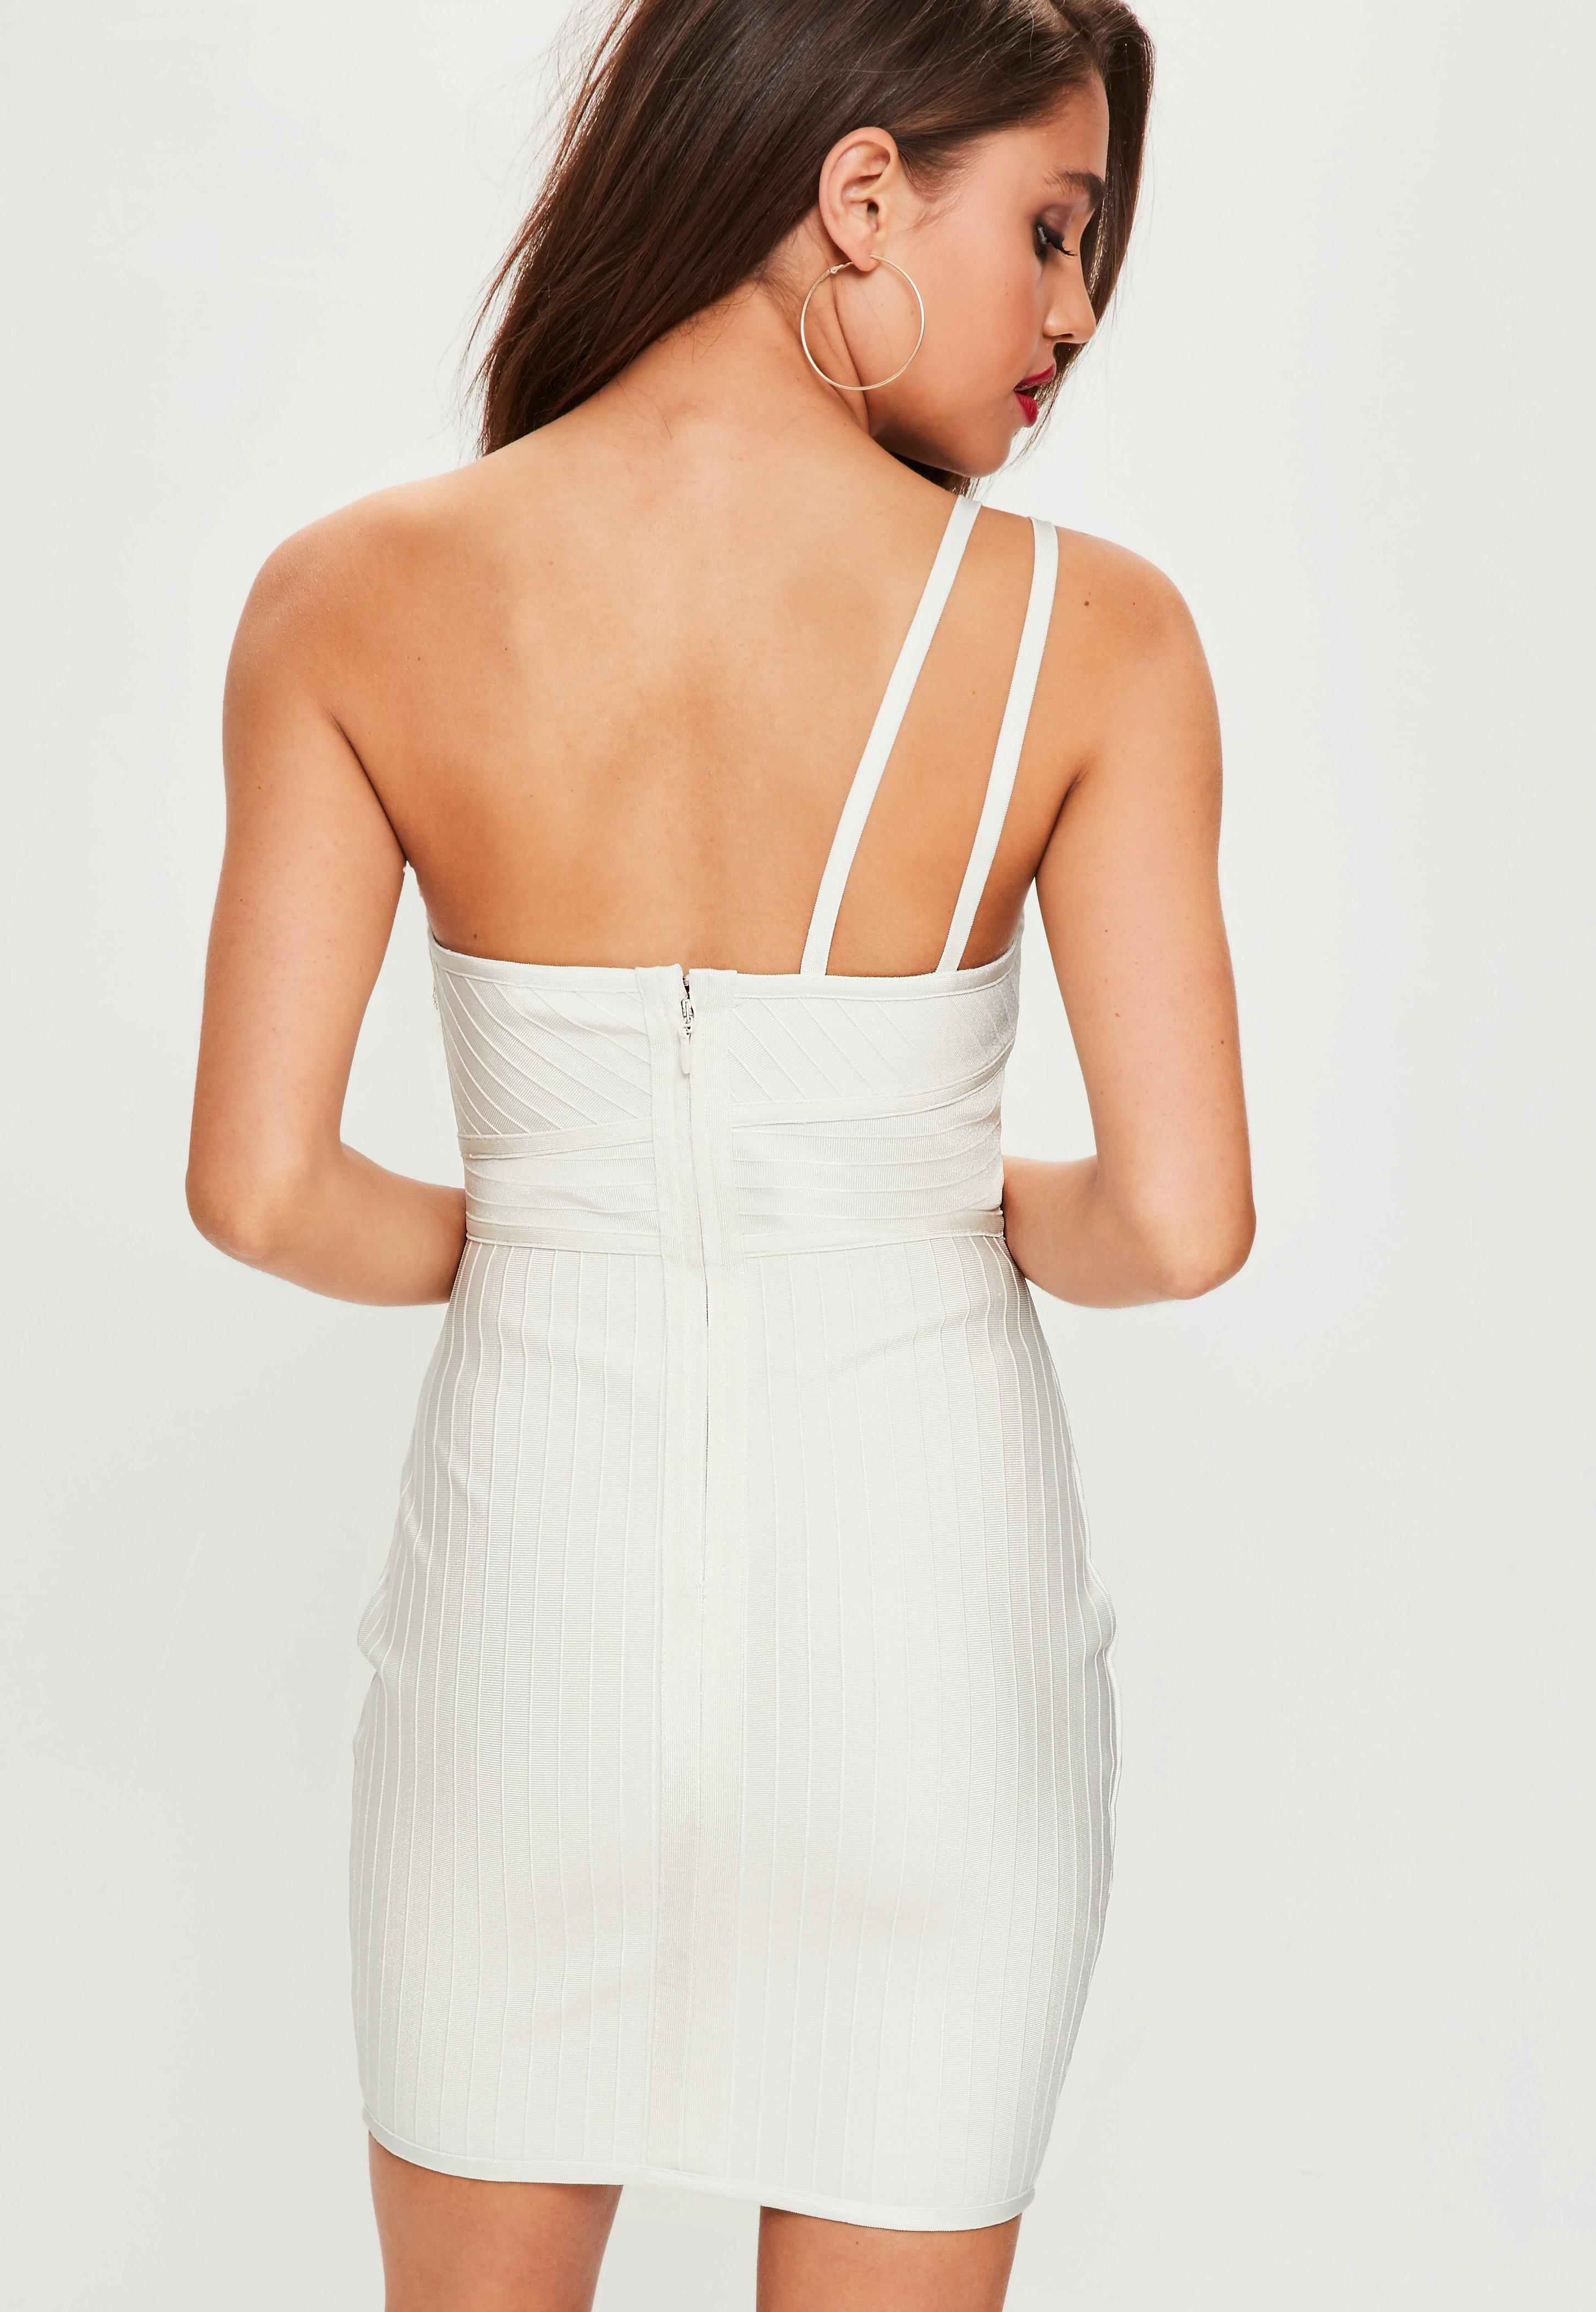 c618d909f15 Lyst - Missguided White One Shoulder Bandage Mini Dress in White